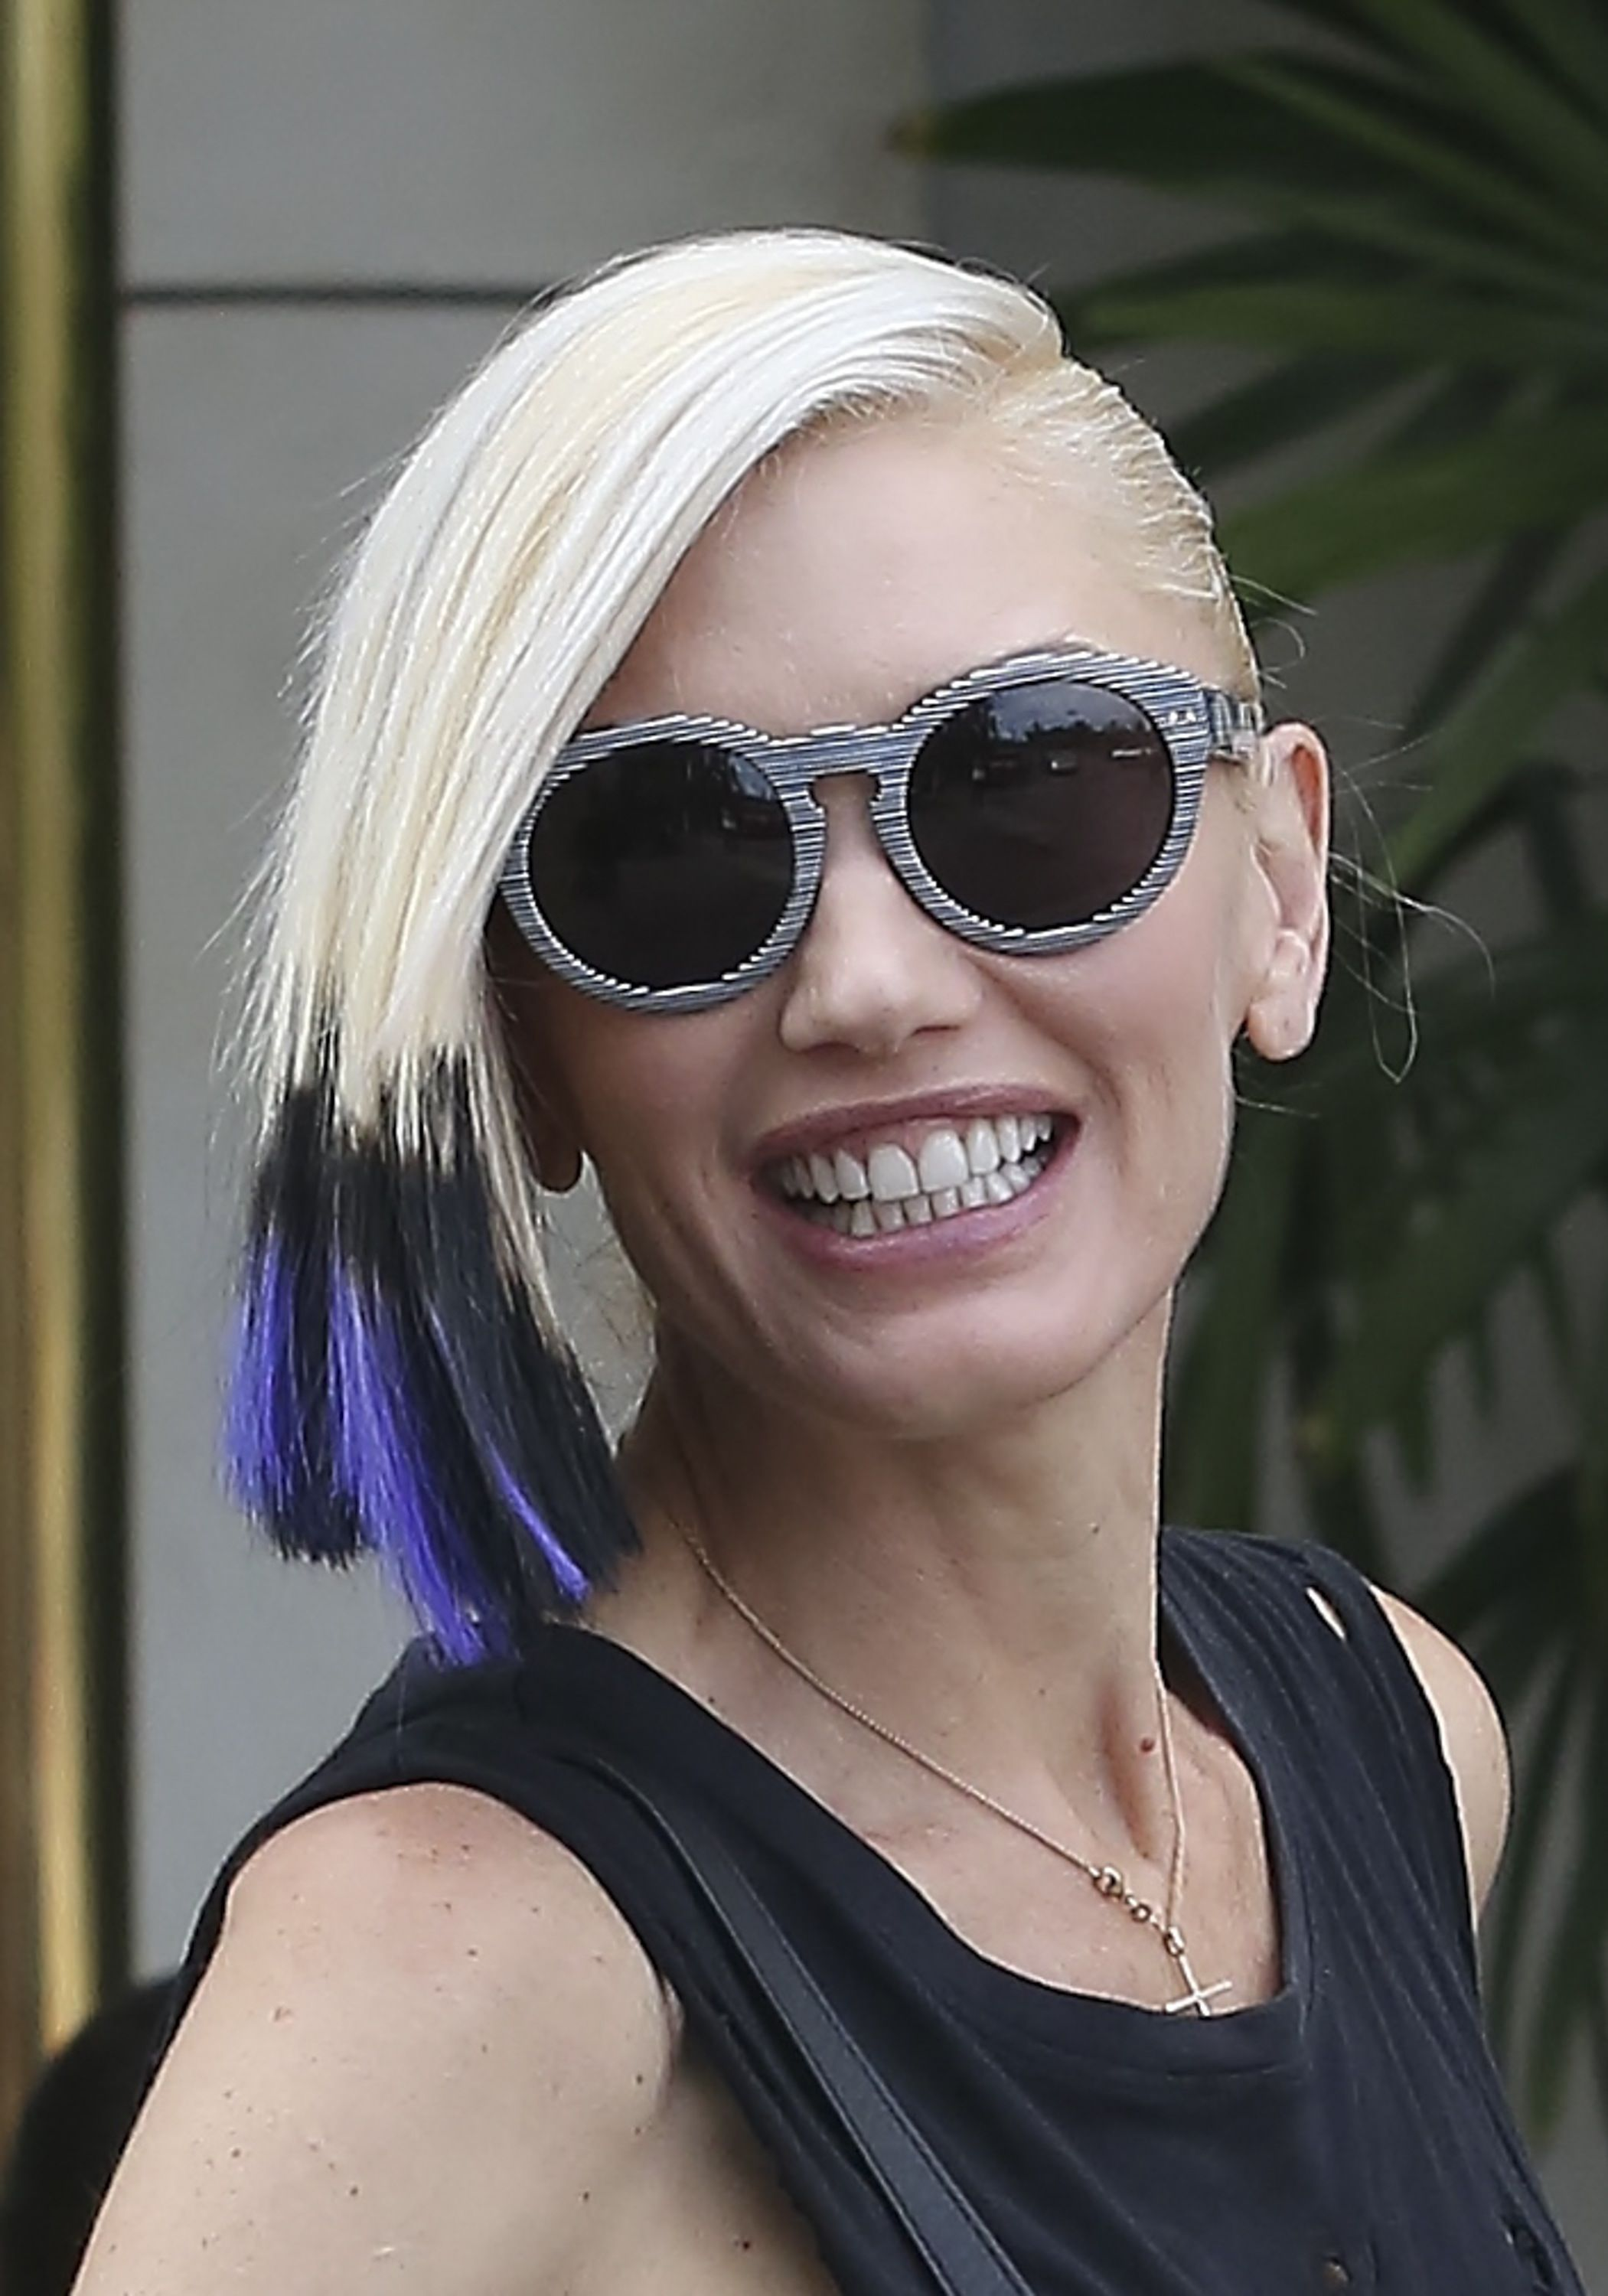 gwen stefani hair the voice | Gwen Stefani Debuts New Rocker-Chic Hairstyle One Month After ...